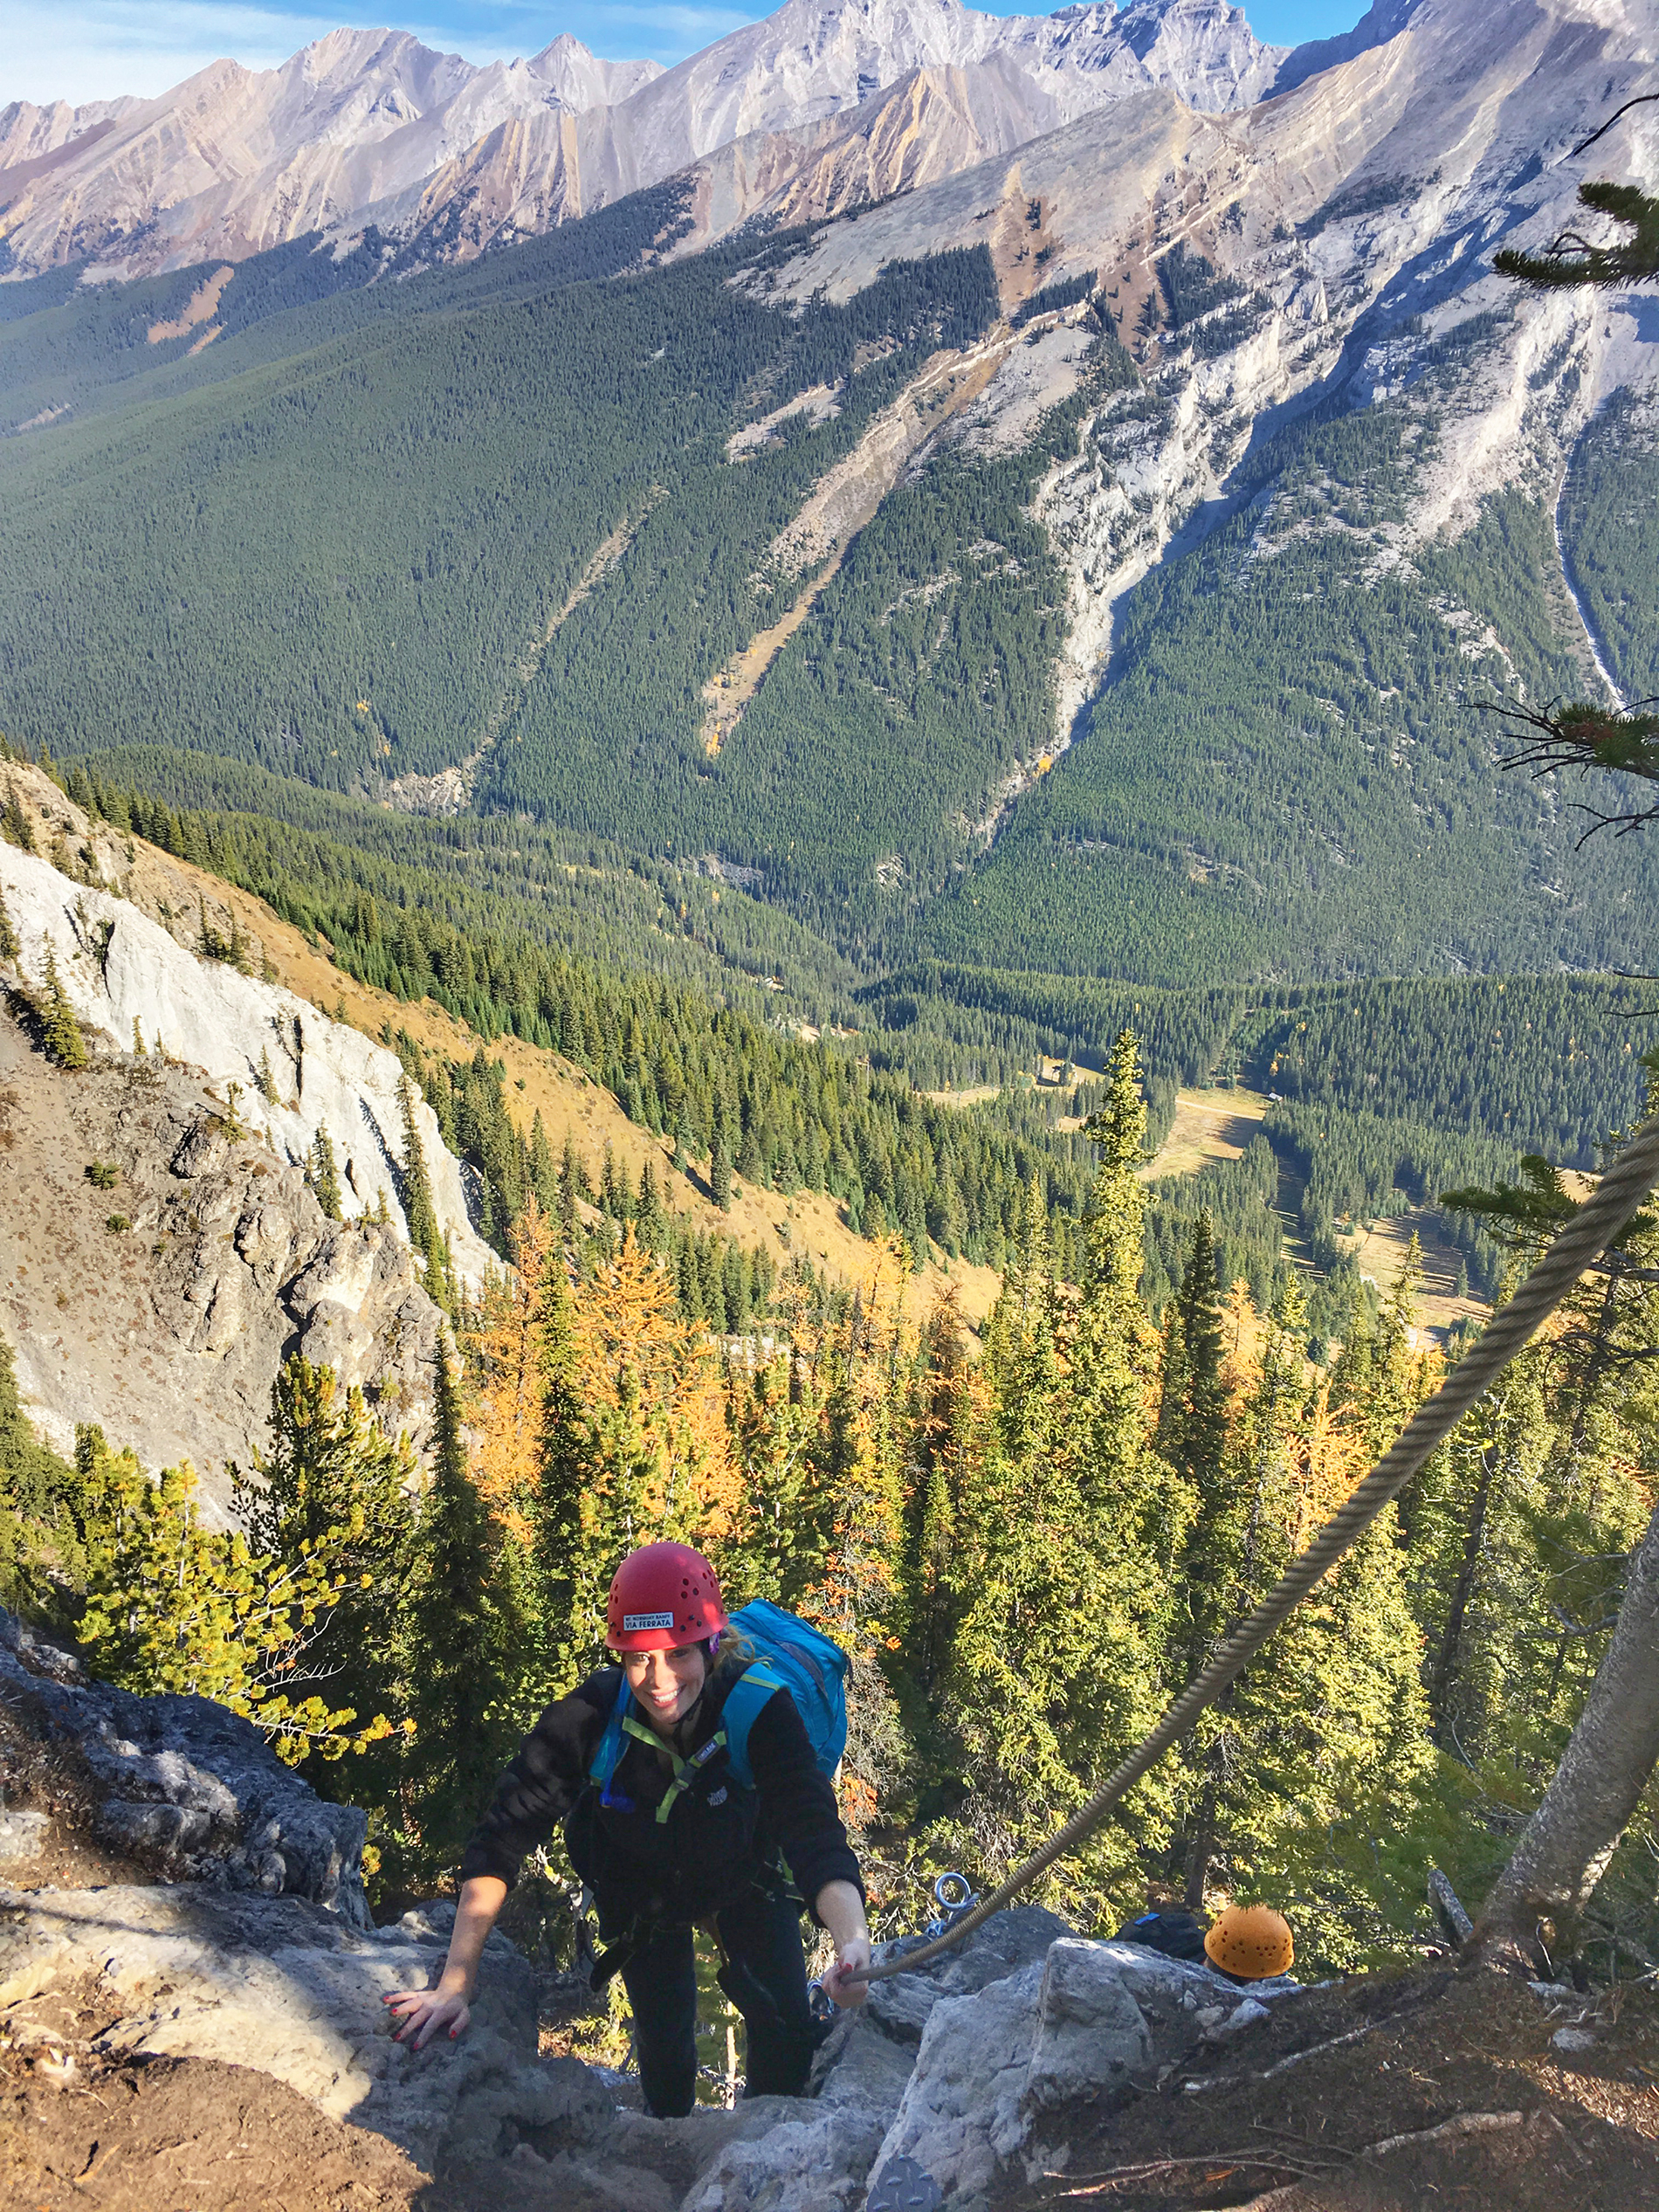 Making our way up the Via Ferrata in Banff.